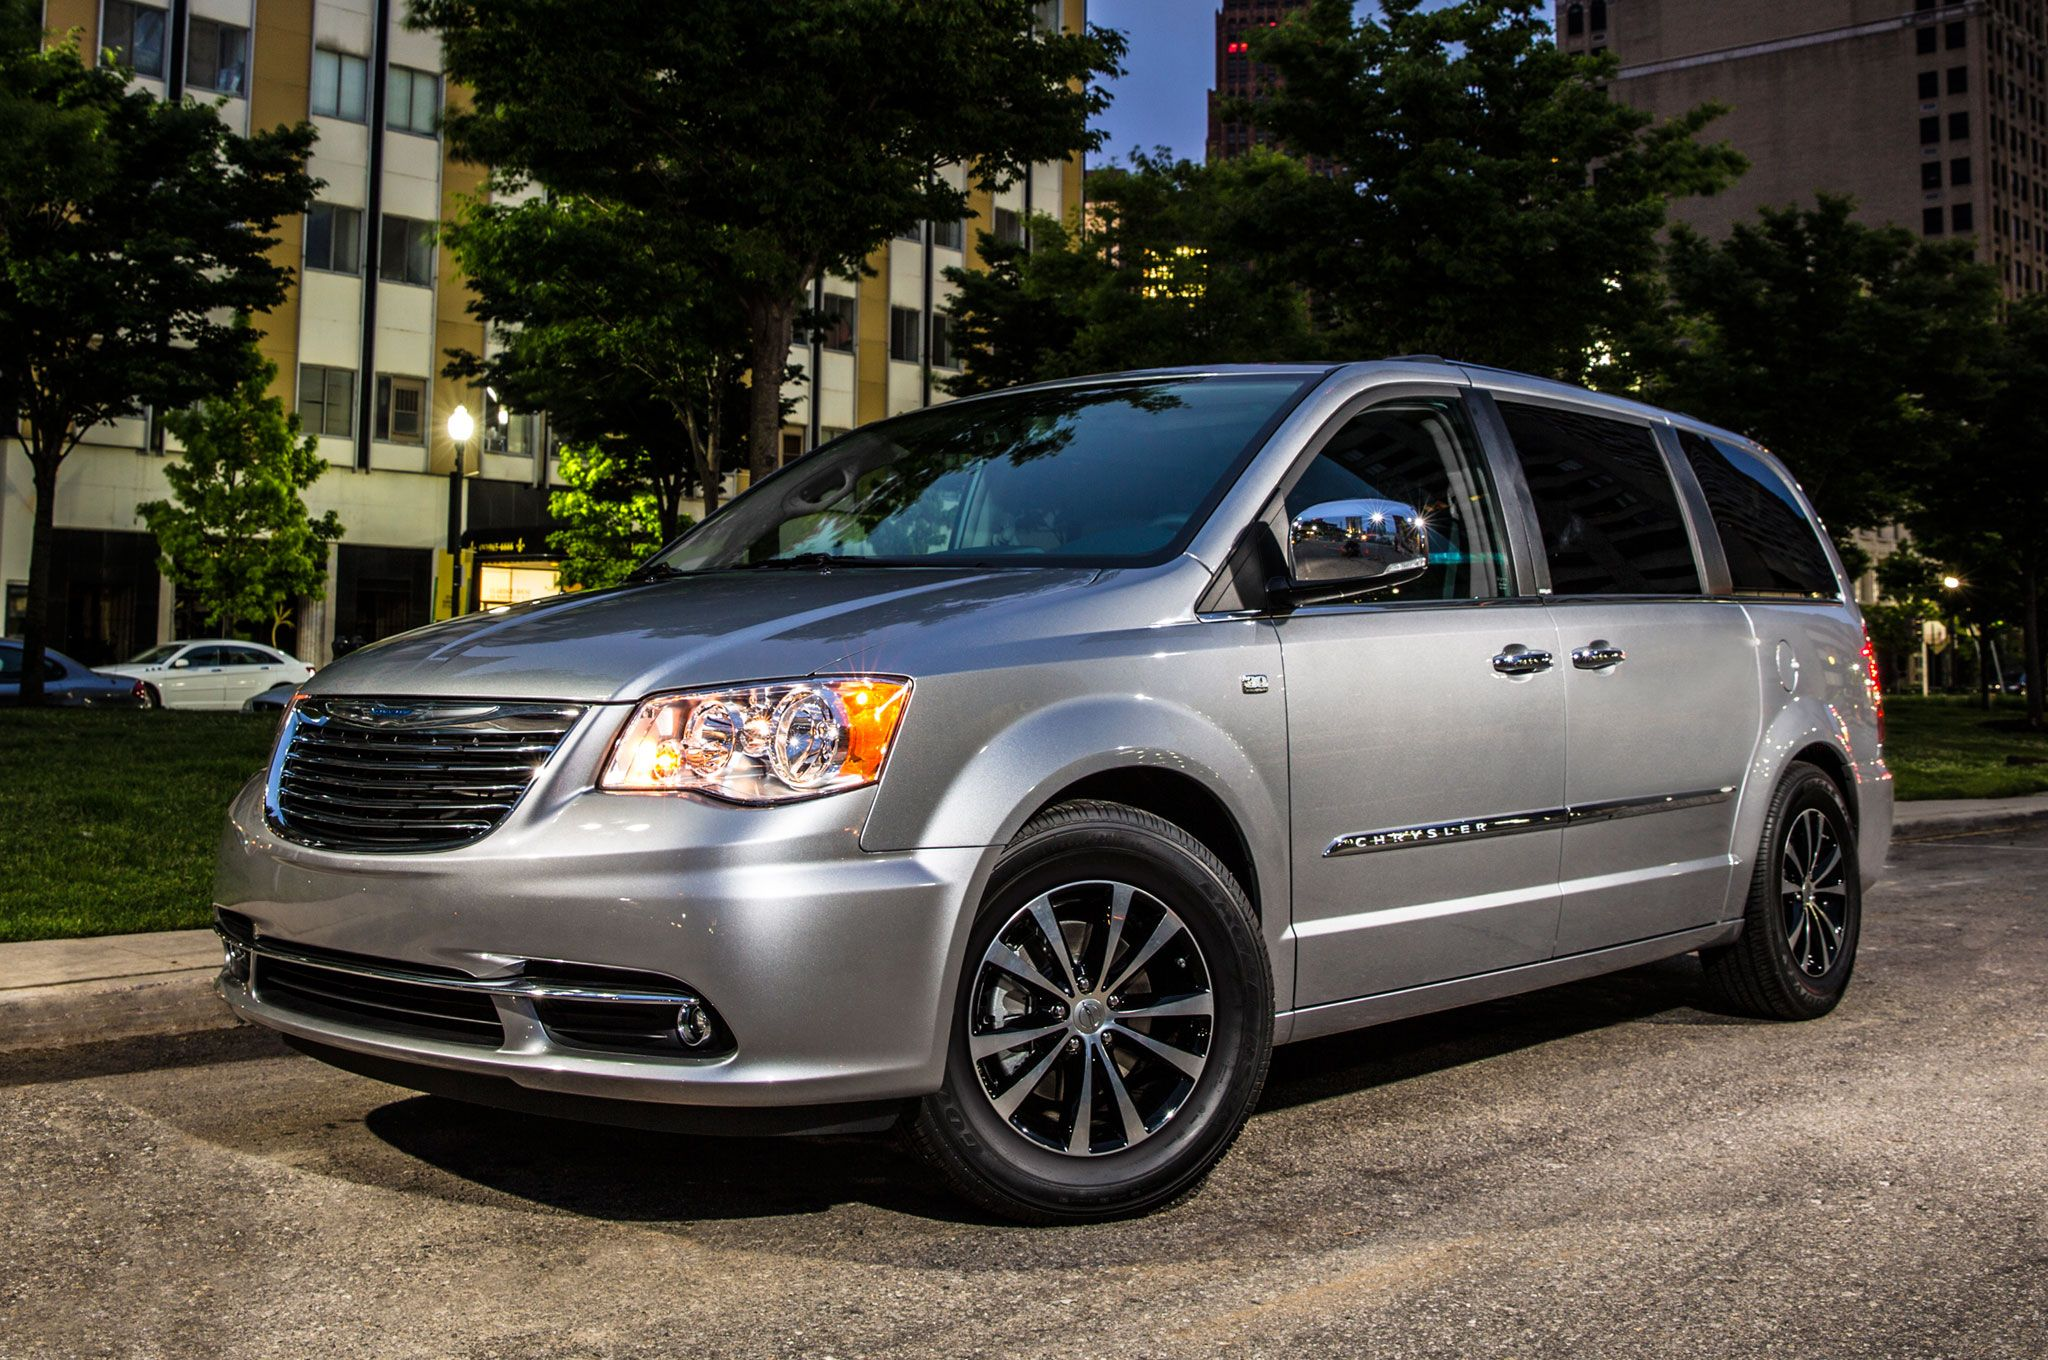 2014 Chrysler Town and Country (With images) Chrysler